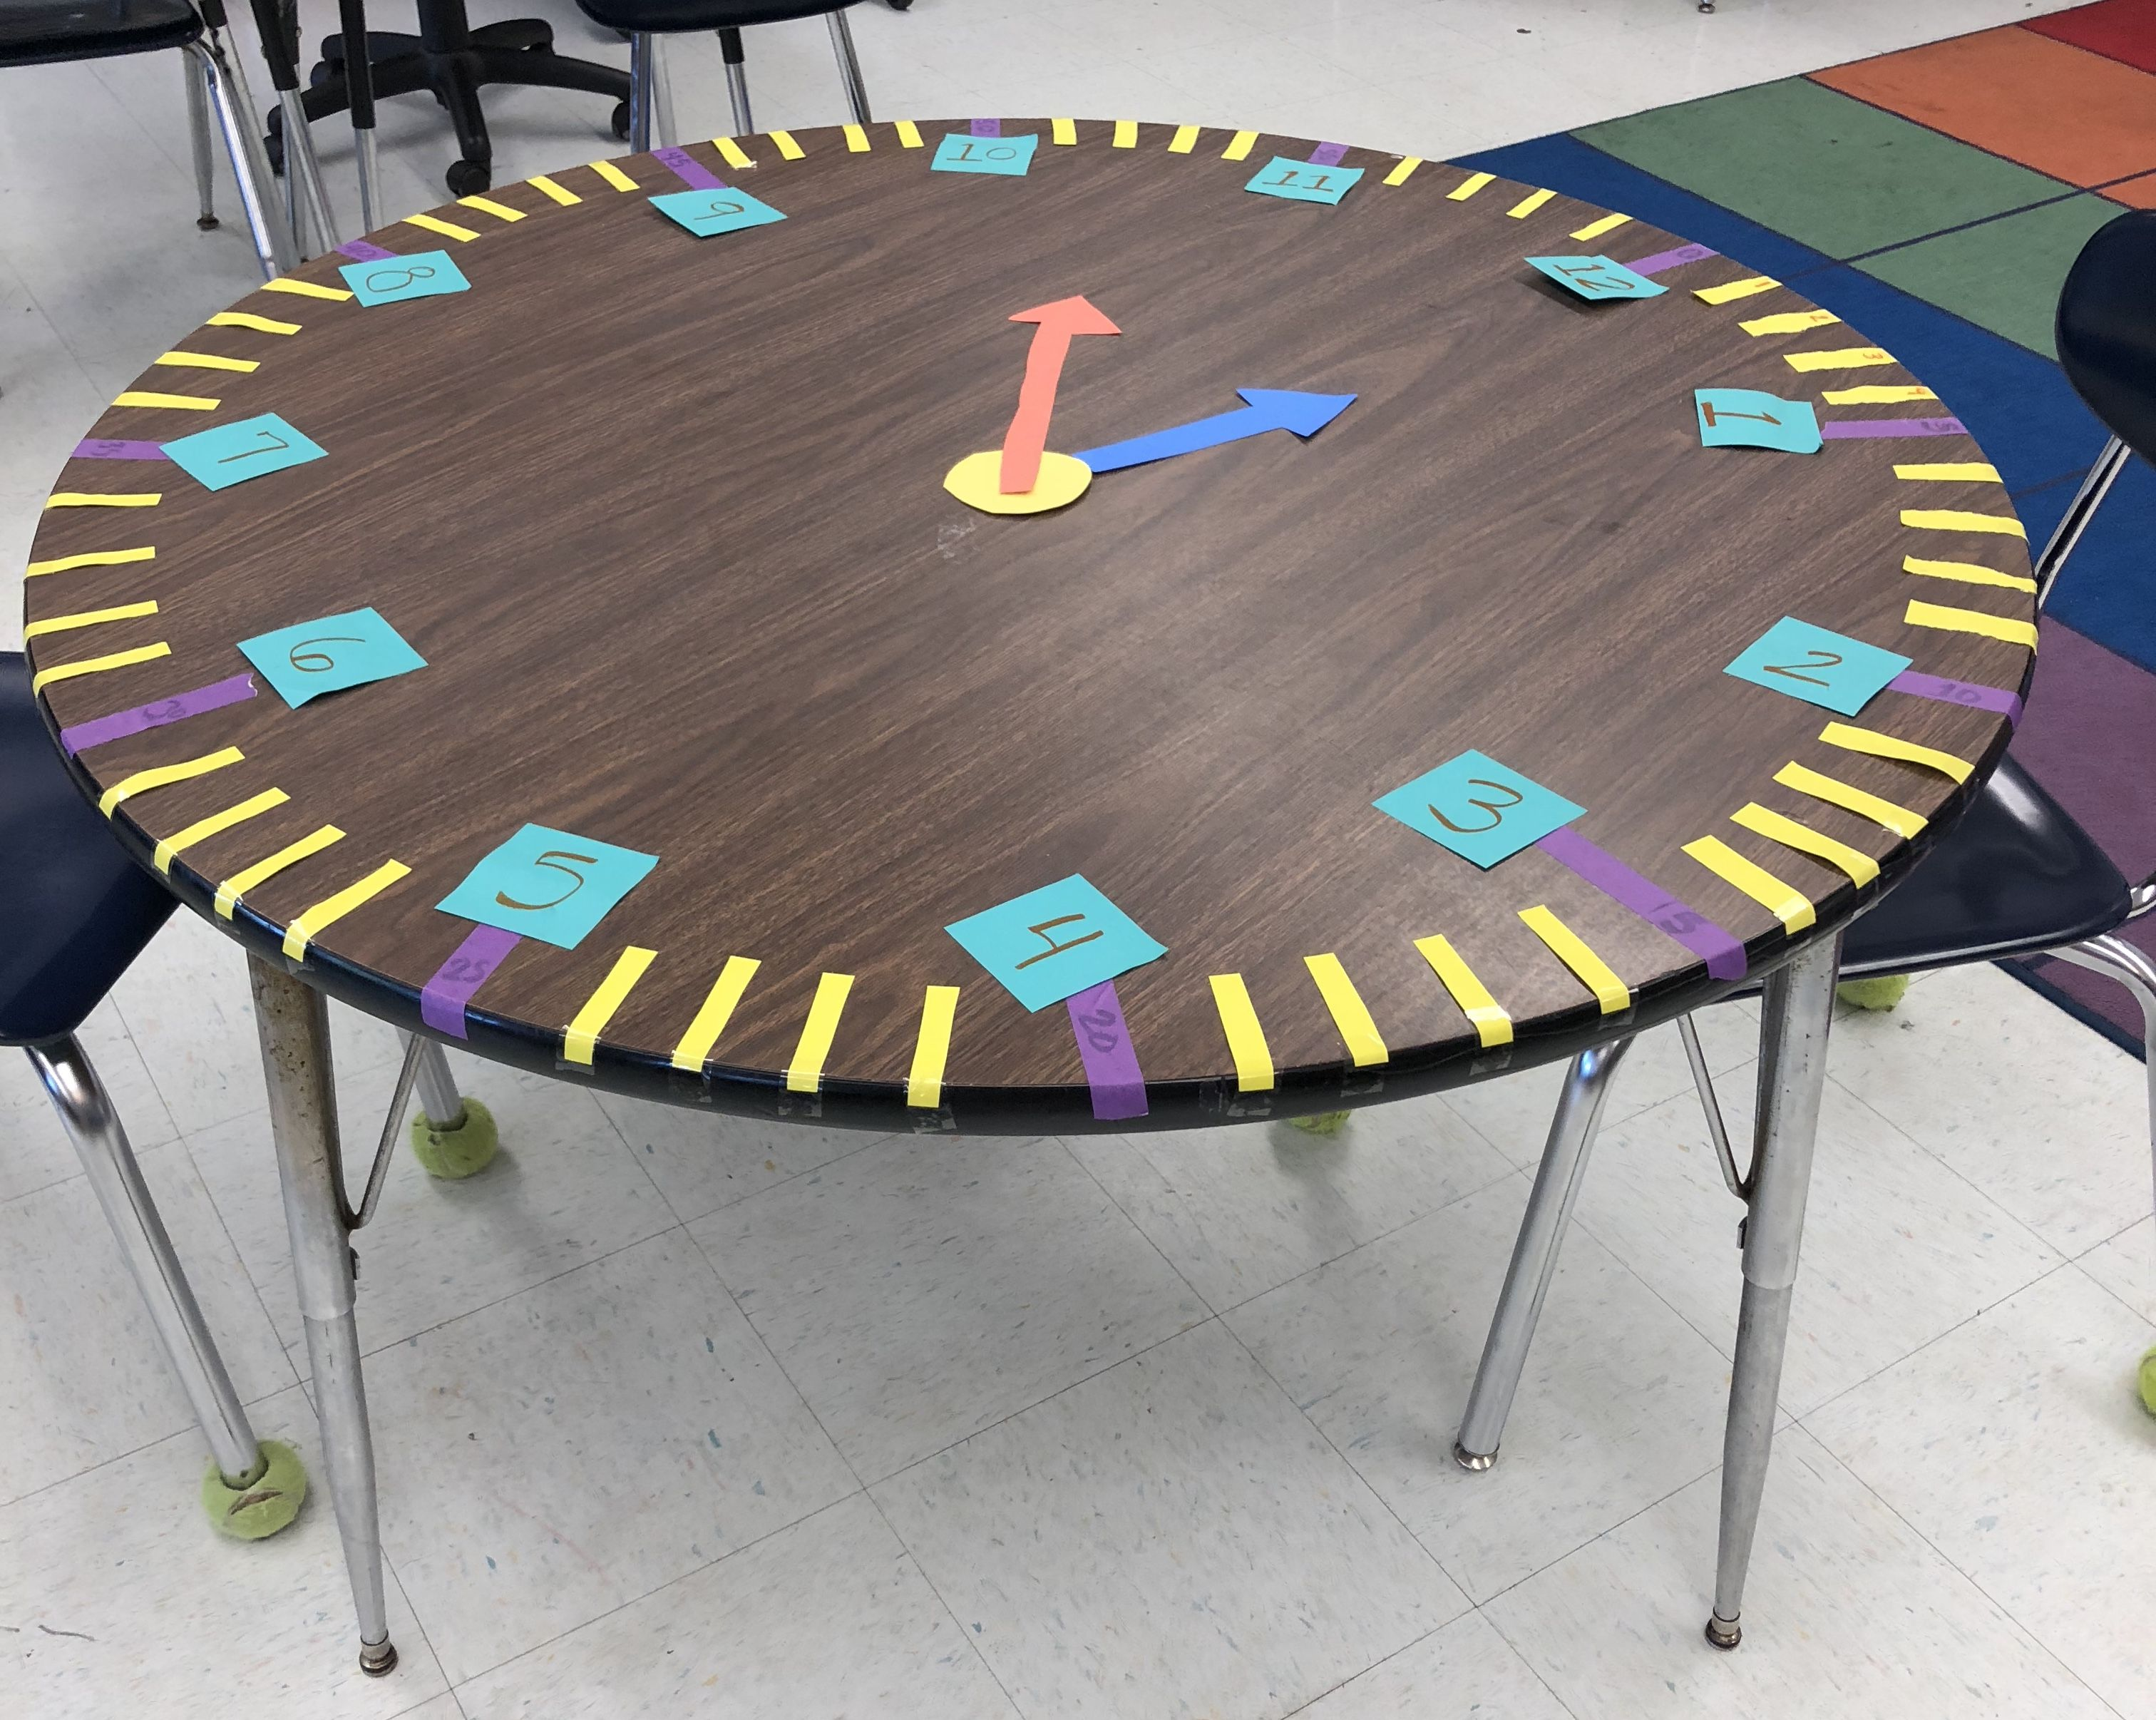 Create A Click On A Round Table With Students To Learn To